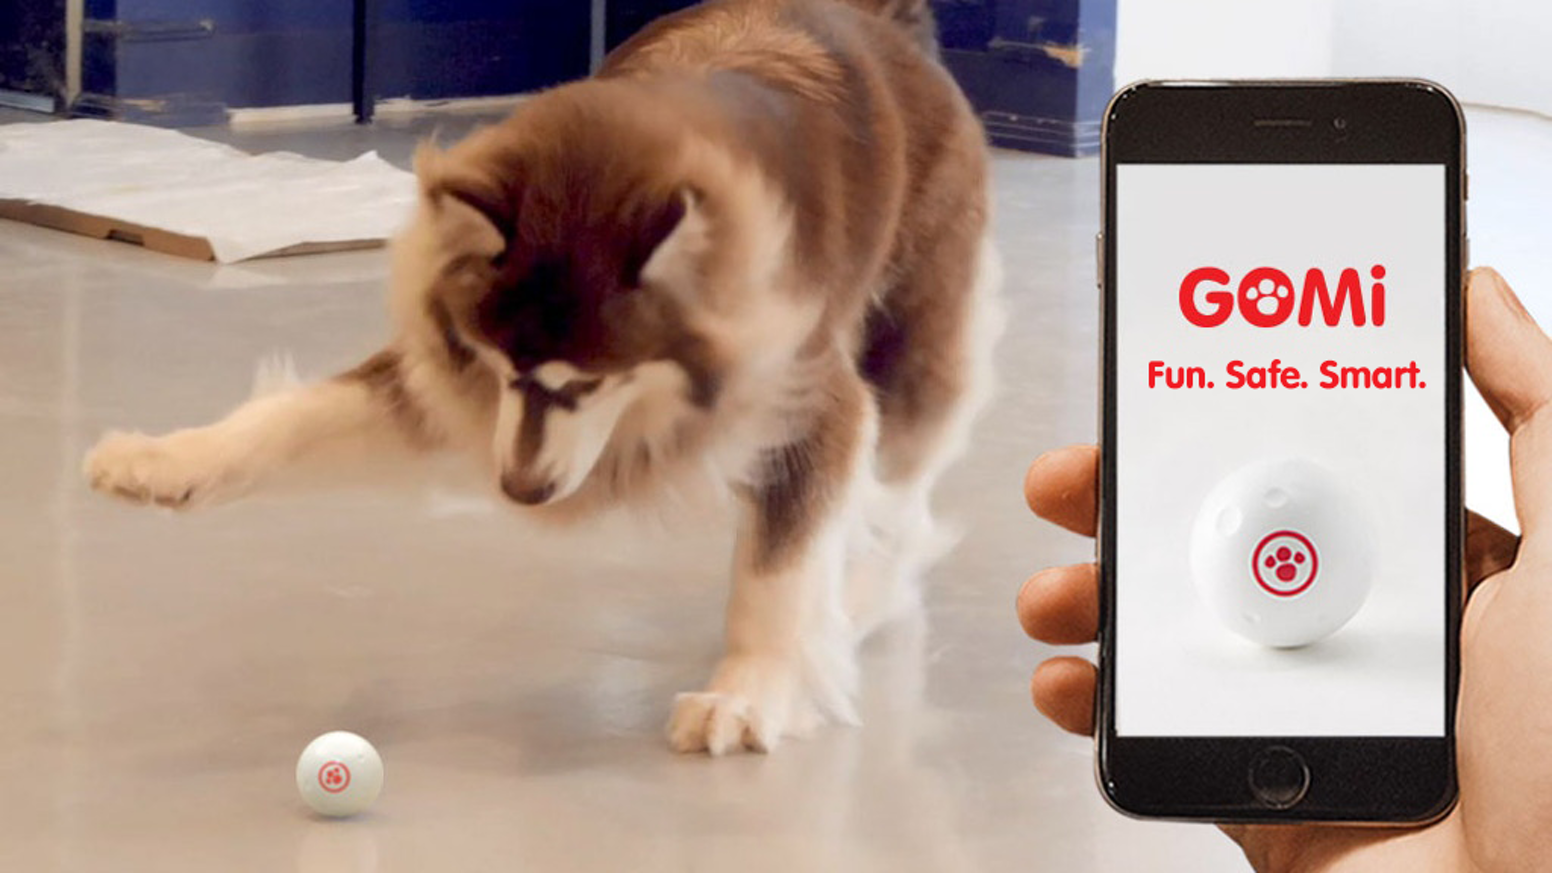 The world's premier smart pet toy that provides dogs and cats with hours of entertainment & exercises, even when they are home alone!